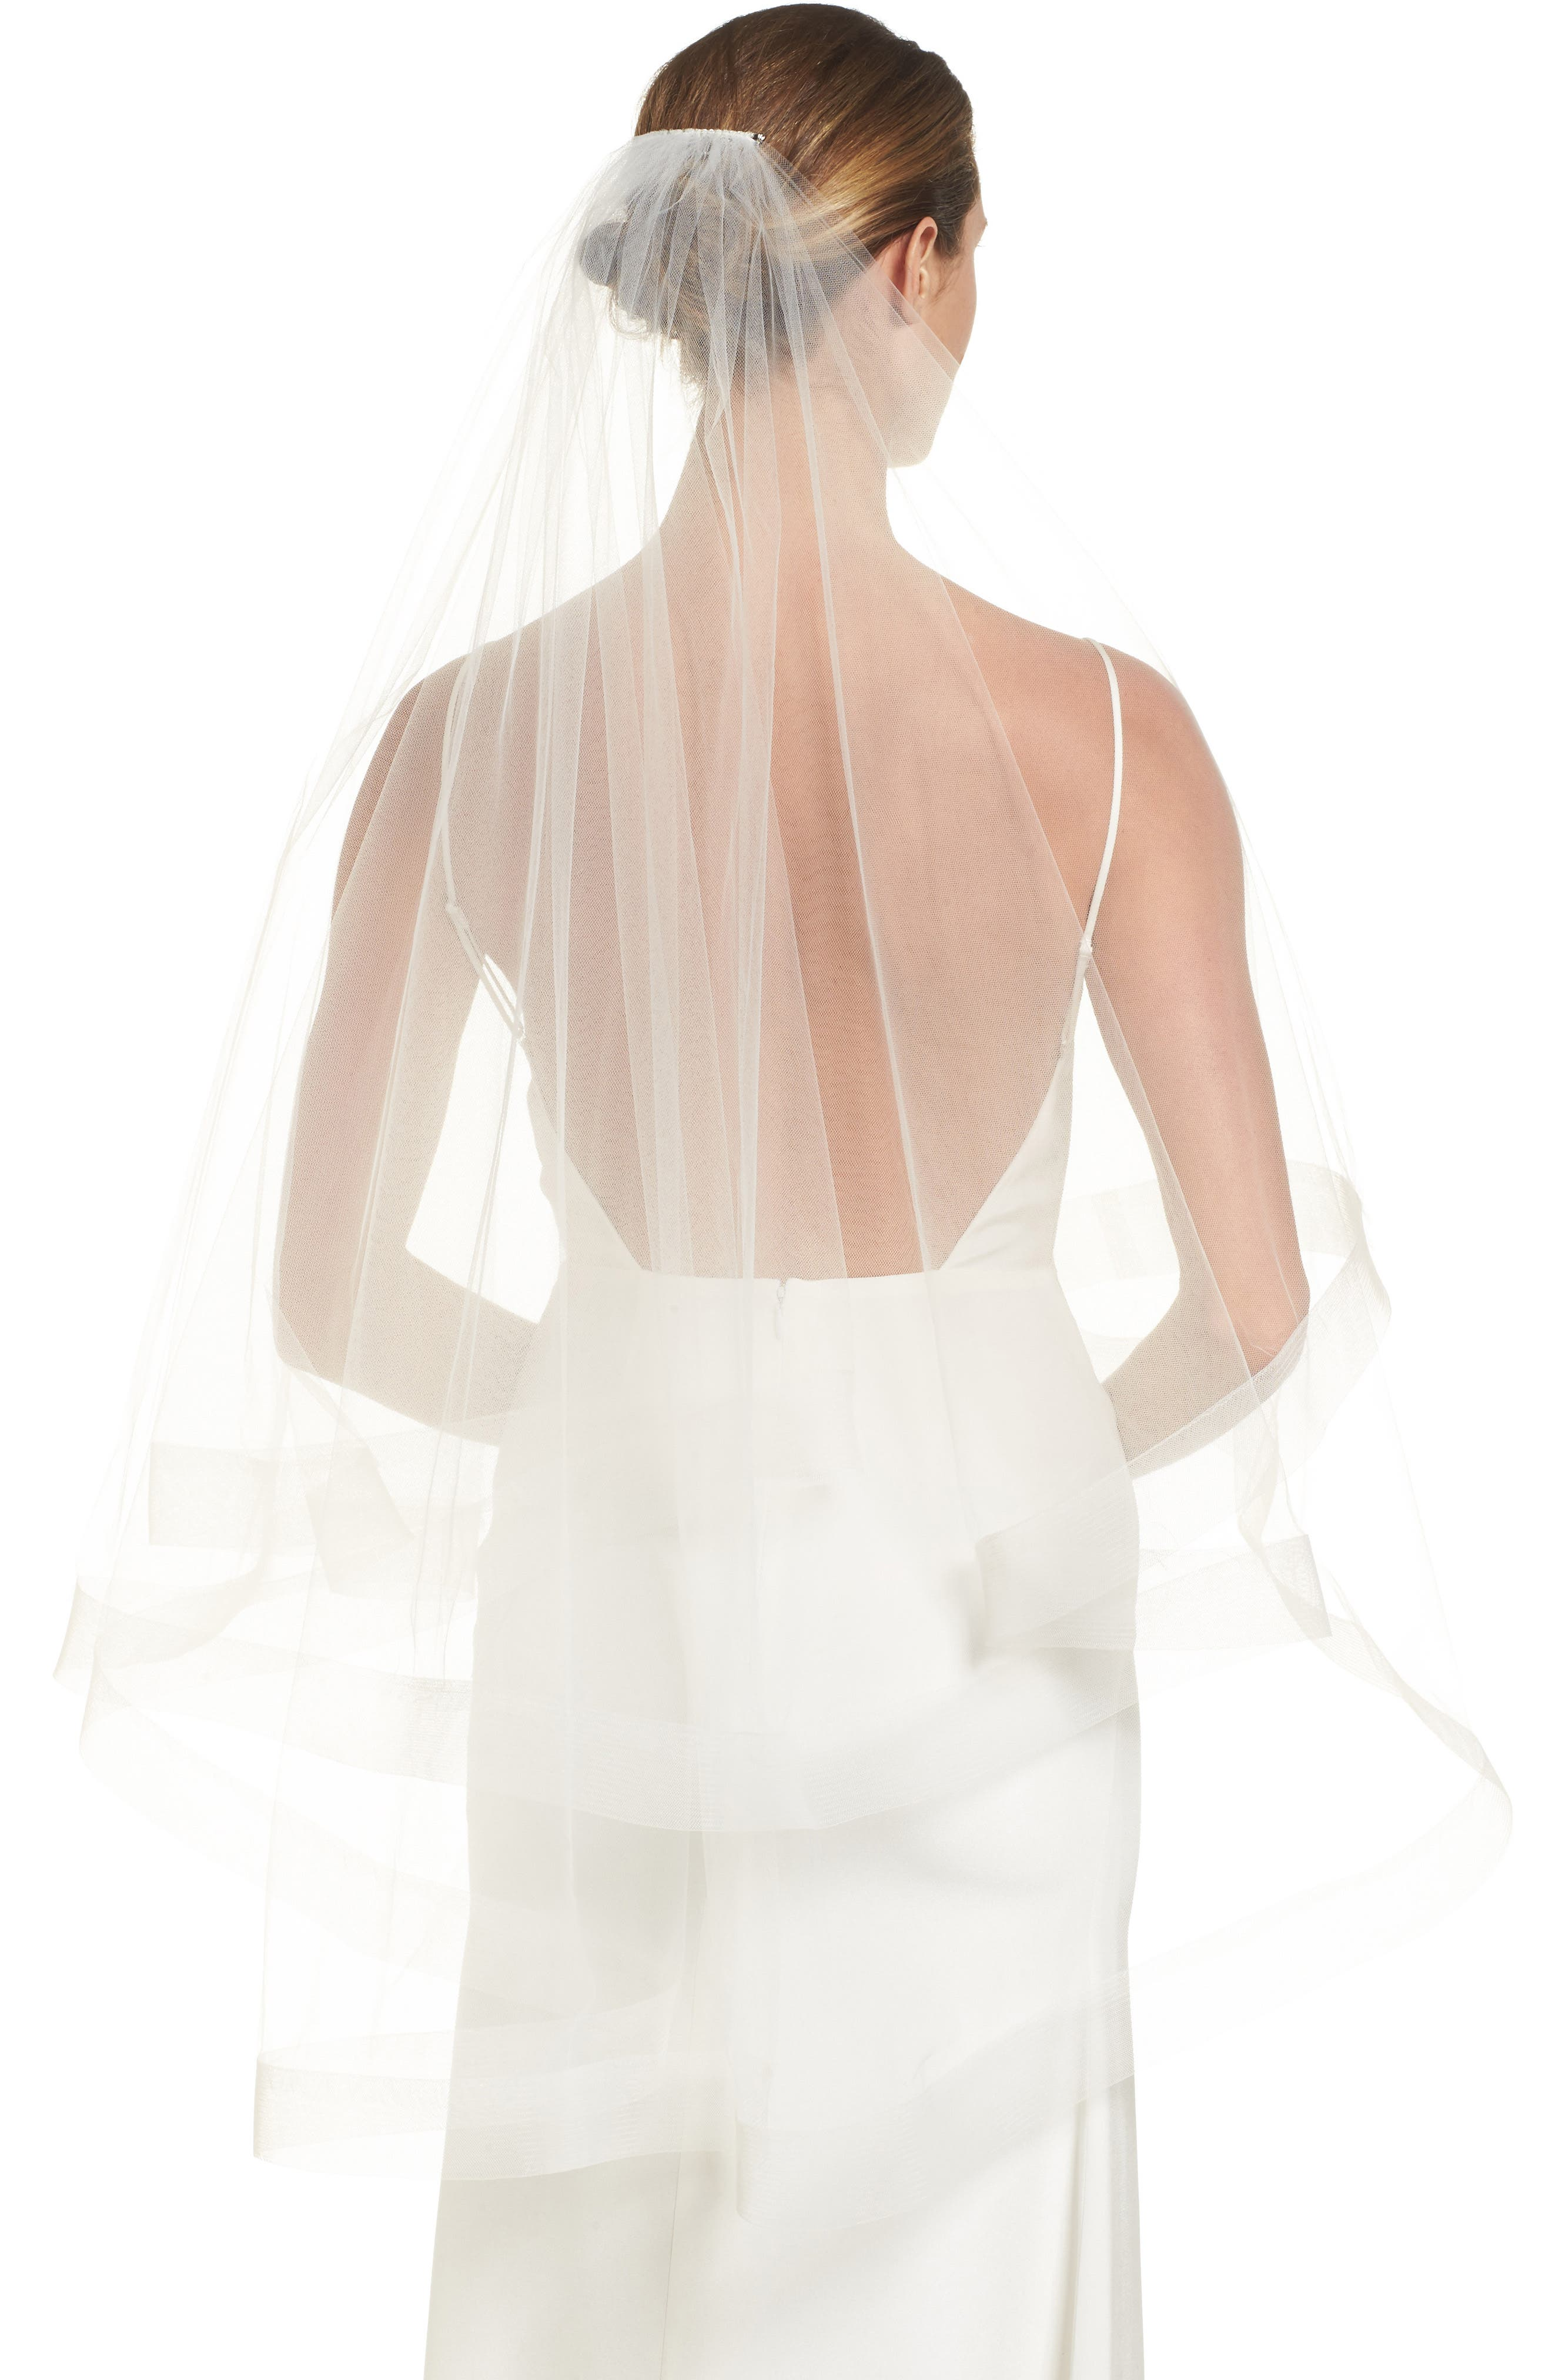 Dickinson Bridal Veil,                             Main thumbnail 1, color,                             Light Ivory